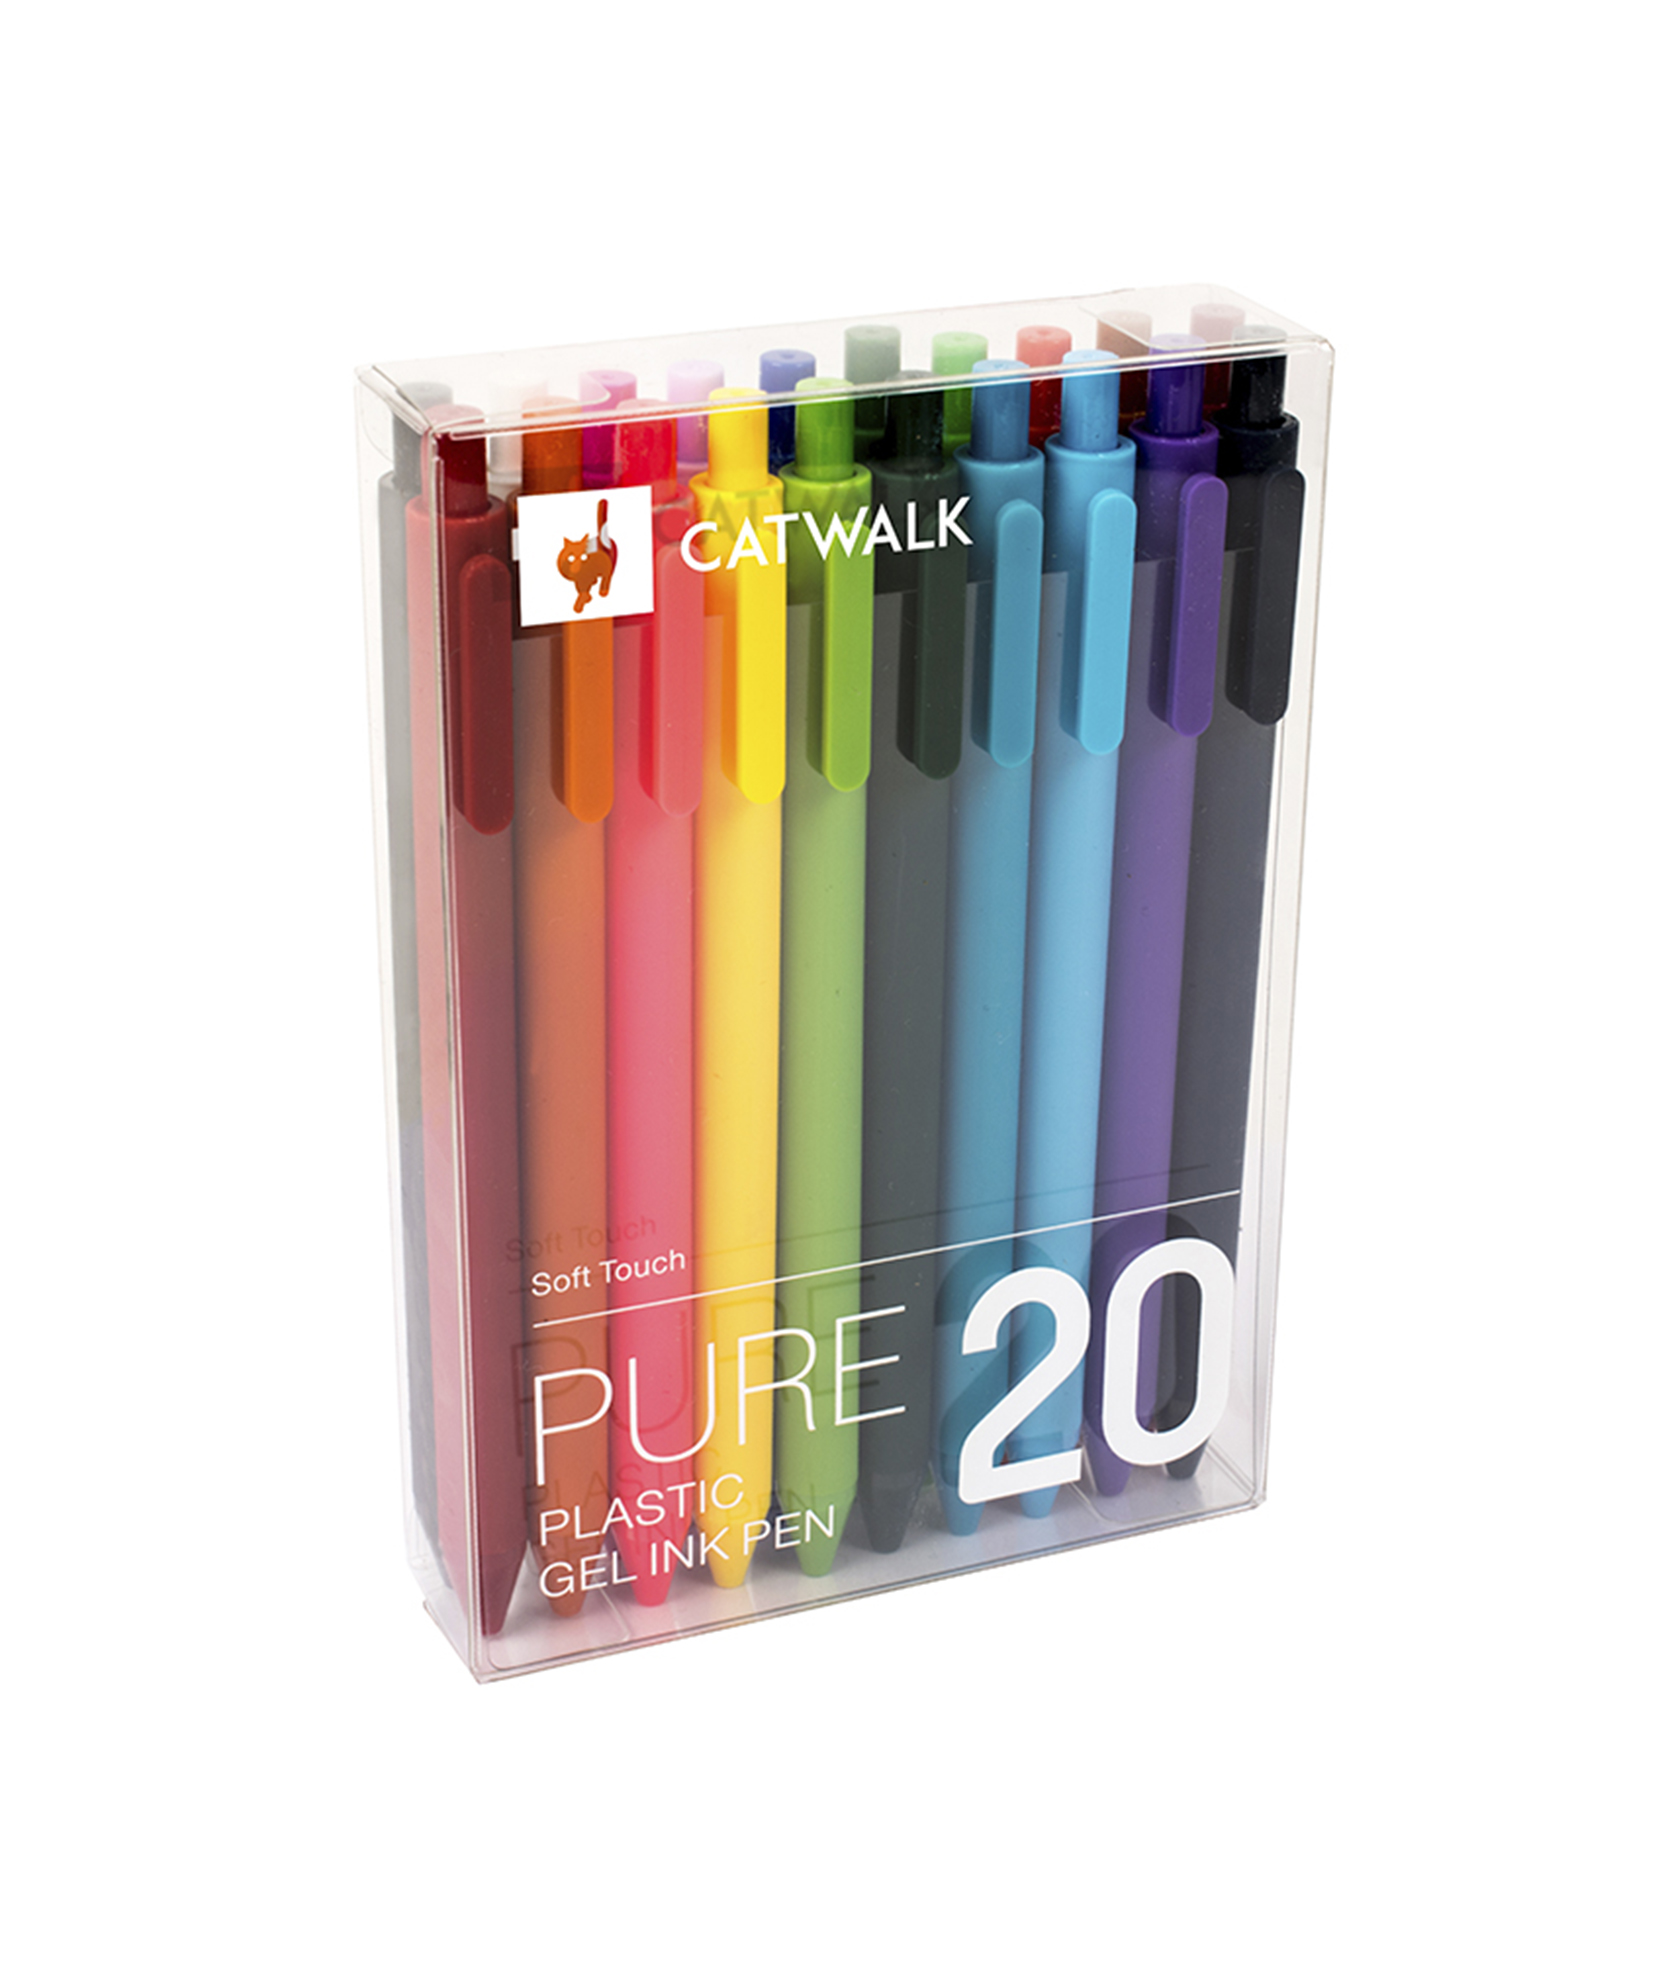 PURE PEN GEL INK 20 UNIT.